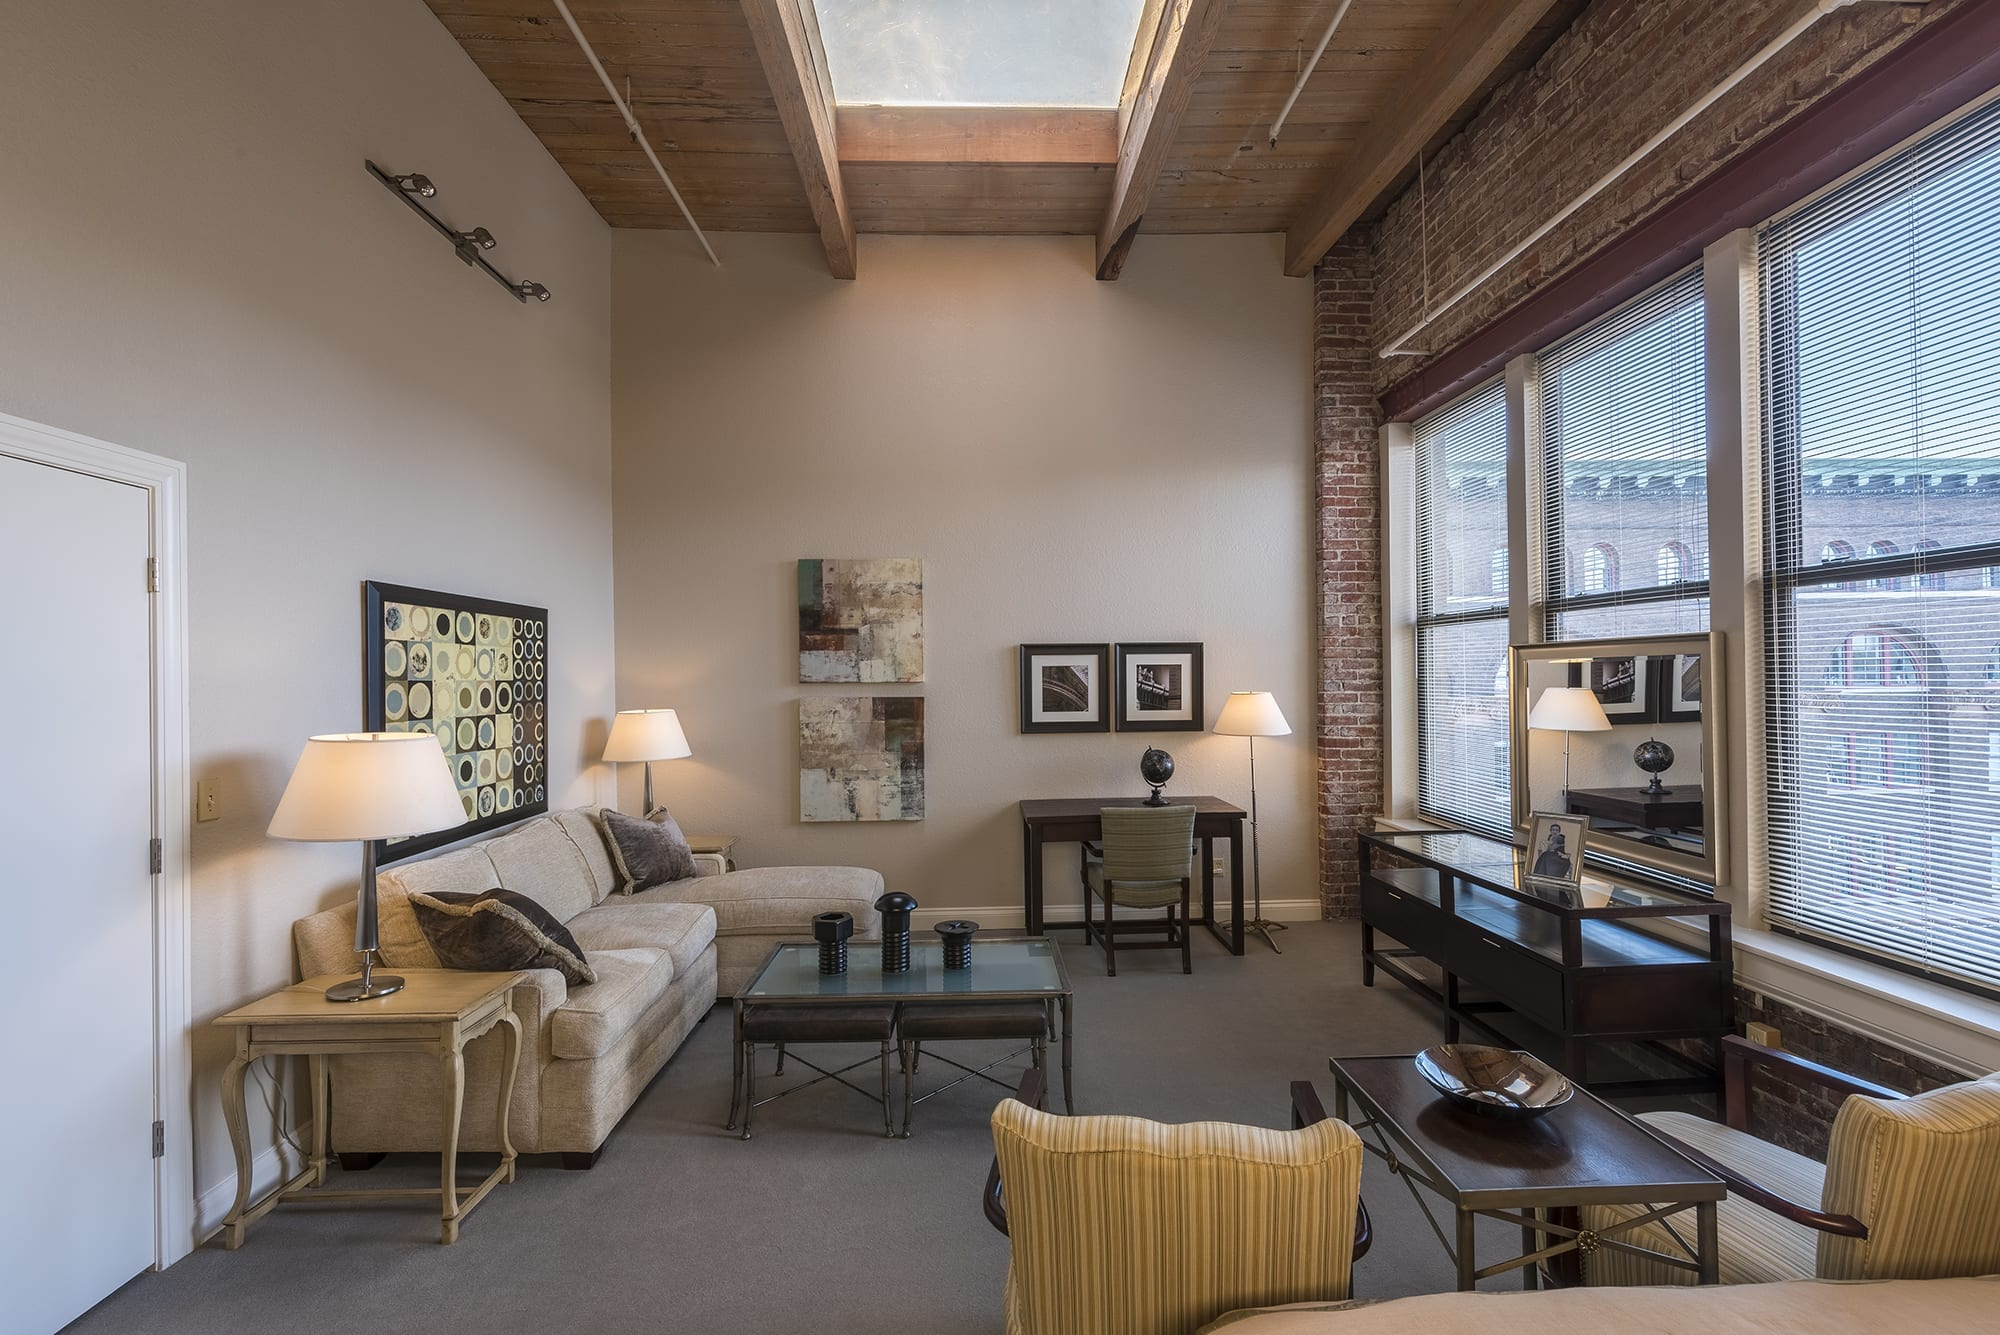 Featured For Sale Soho Lofts 702 Kansas City Lofts